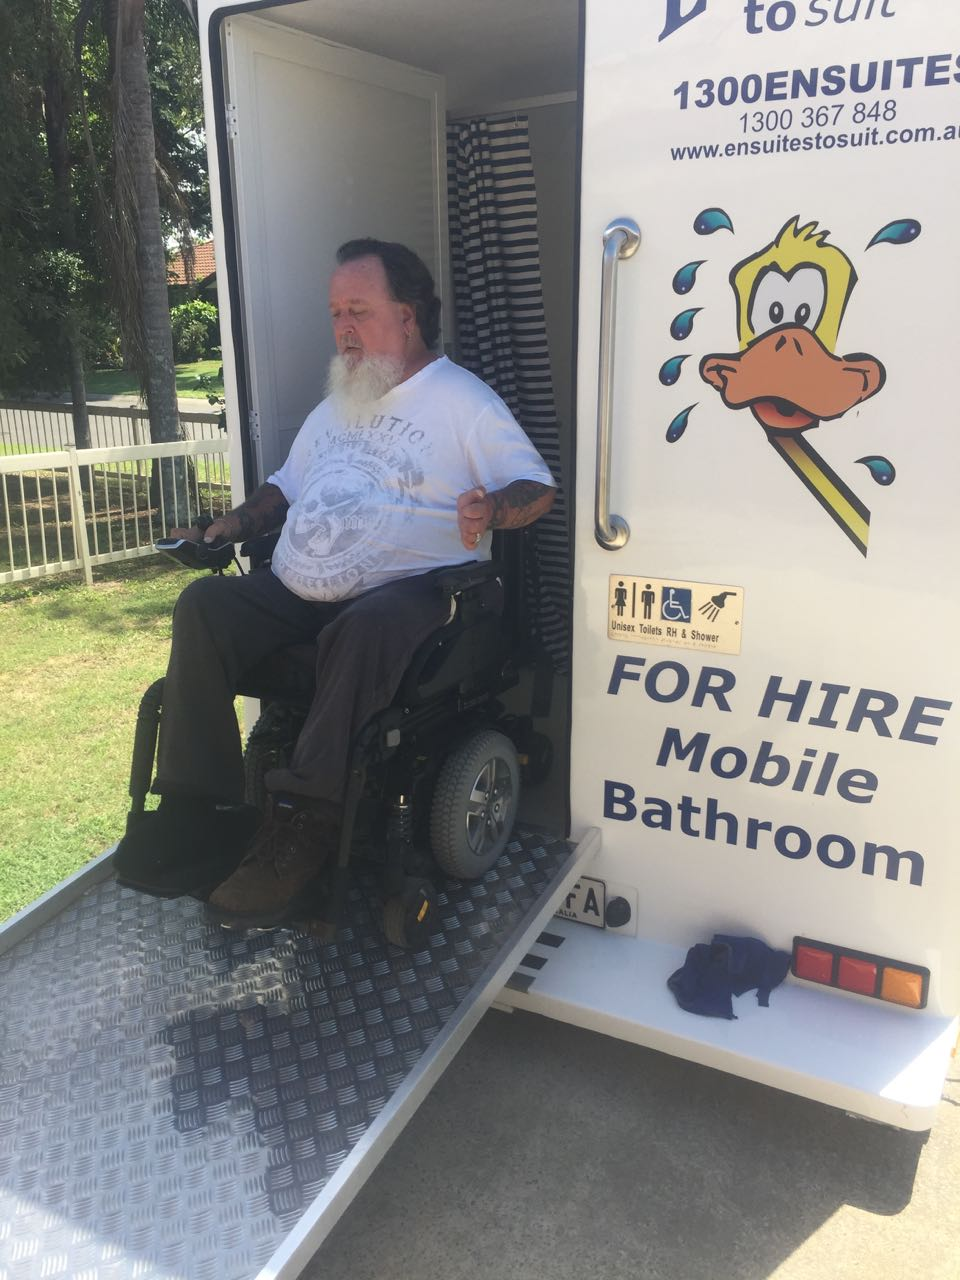 Shower Chairs Adelaide Disabled Portable Bathroom Hire Ensuites To Suit